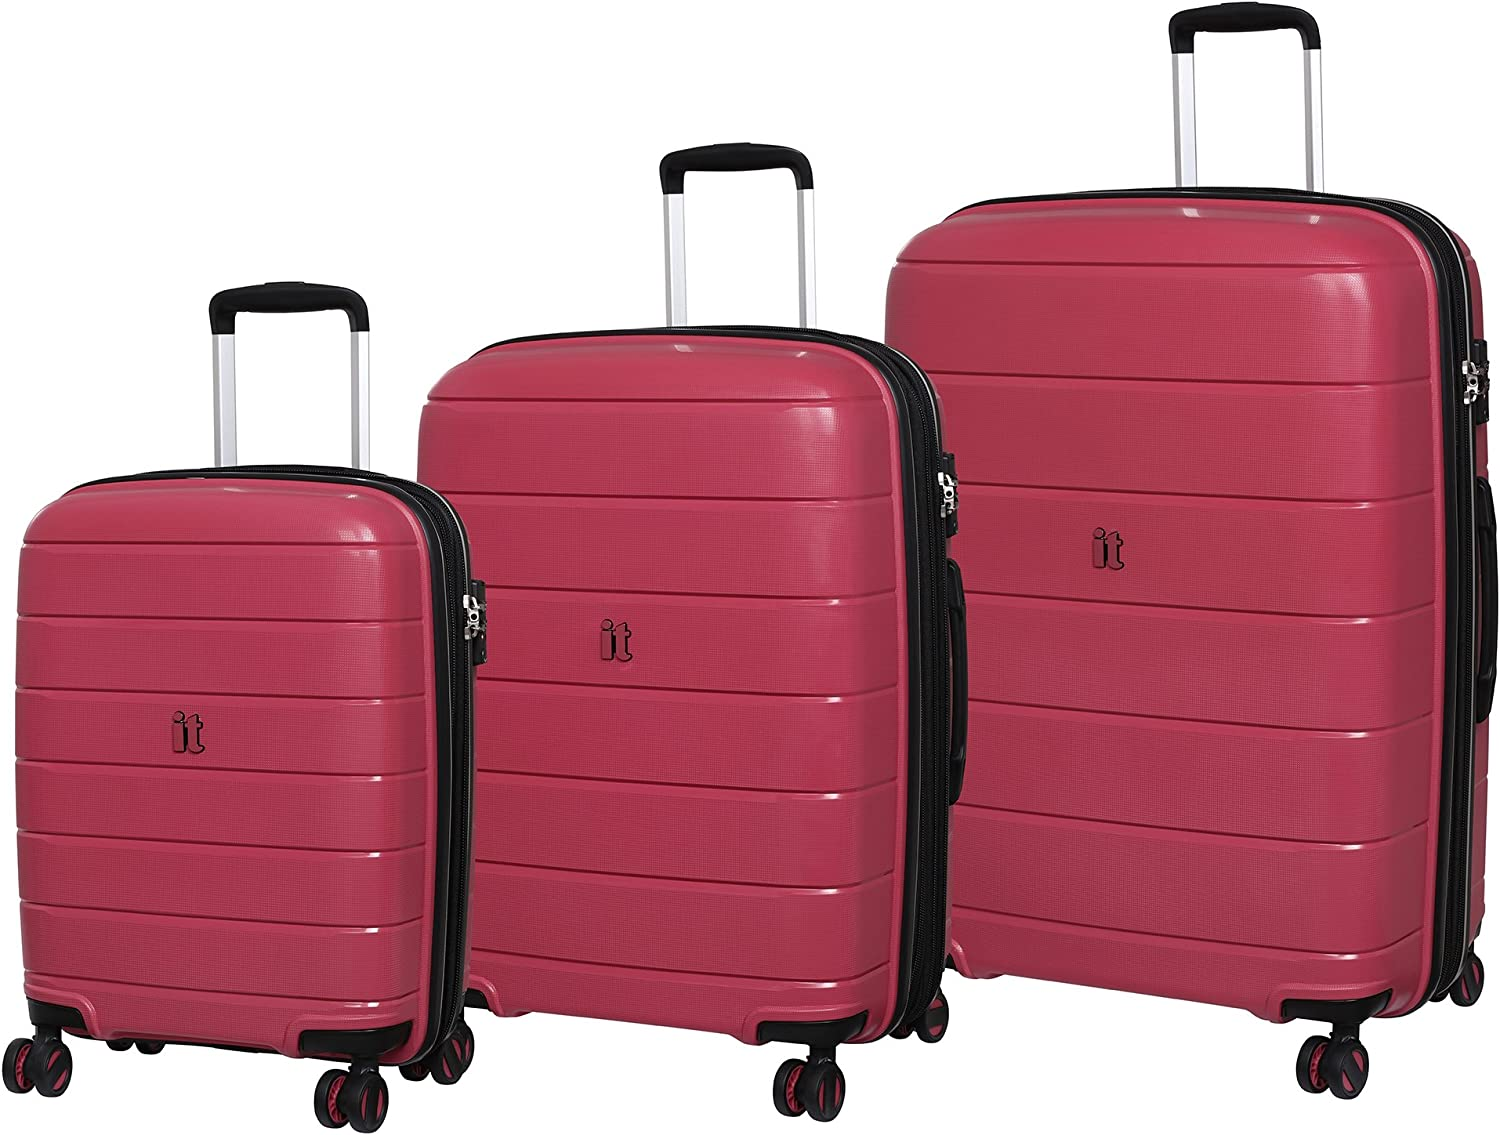 it luggage Maleta, Rosa roja (Rojo) - 15-2183-08GLO3N-S668